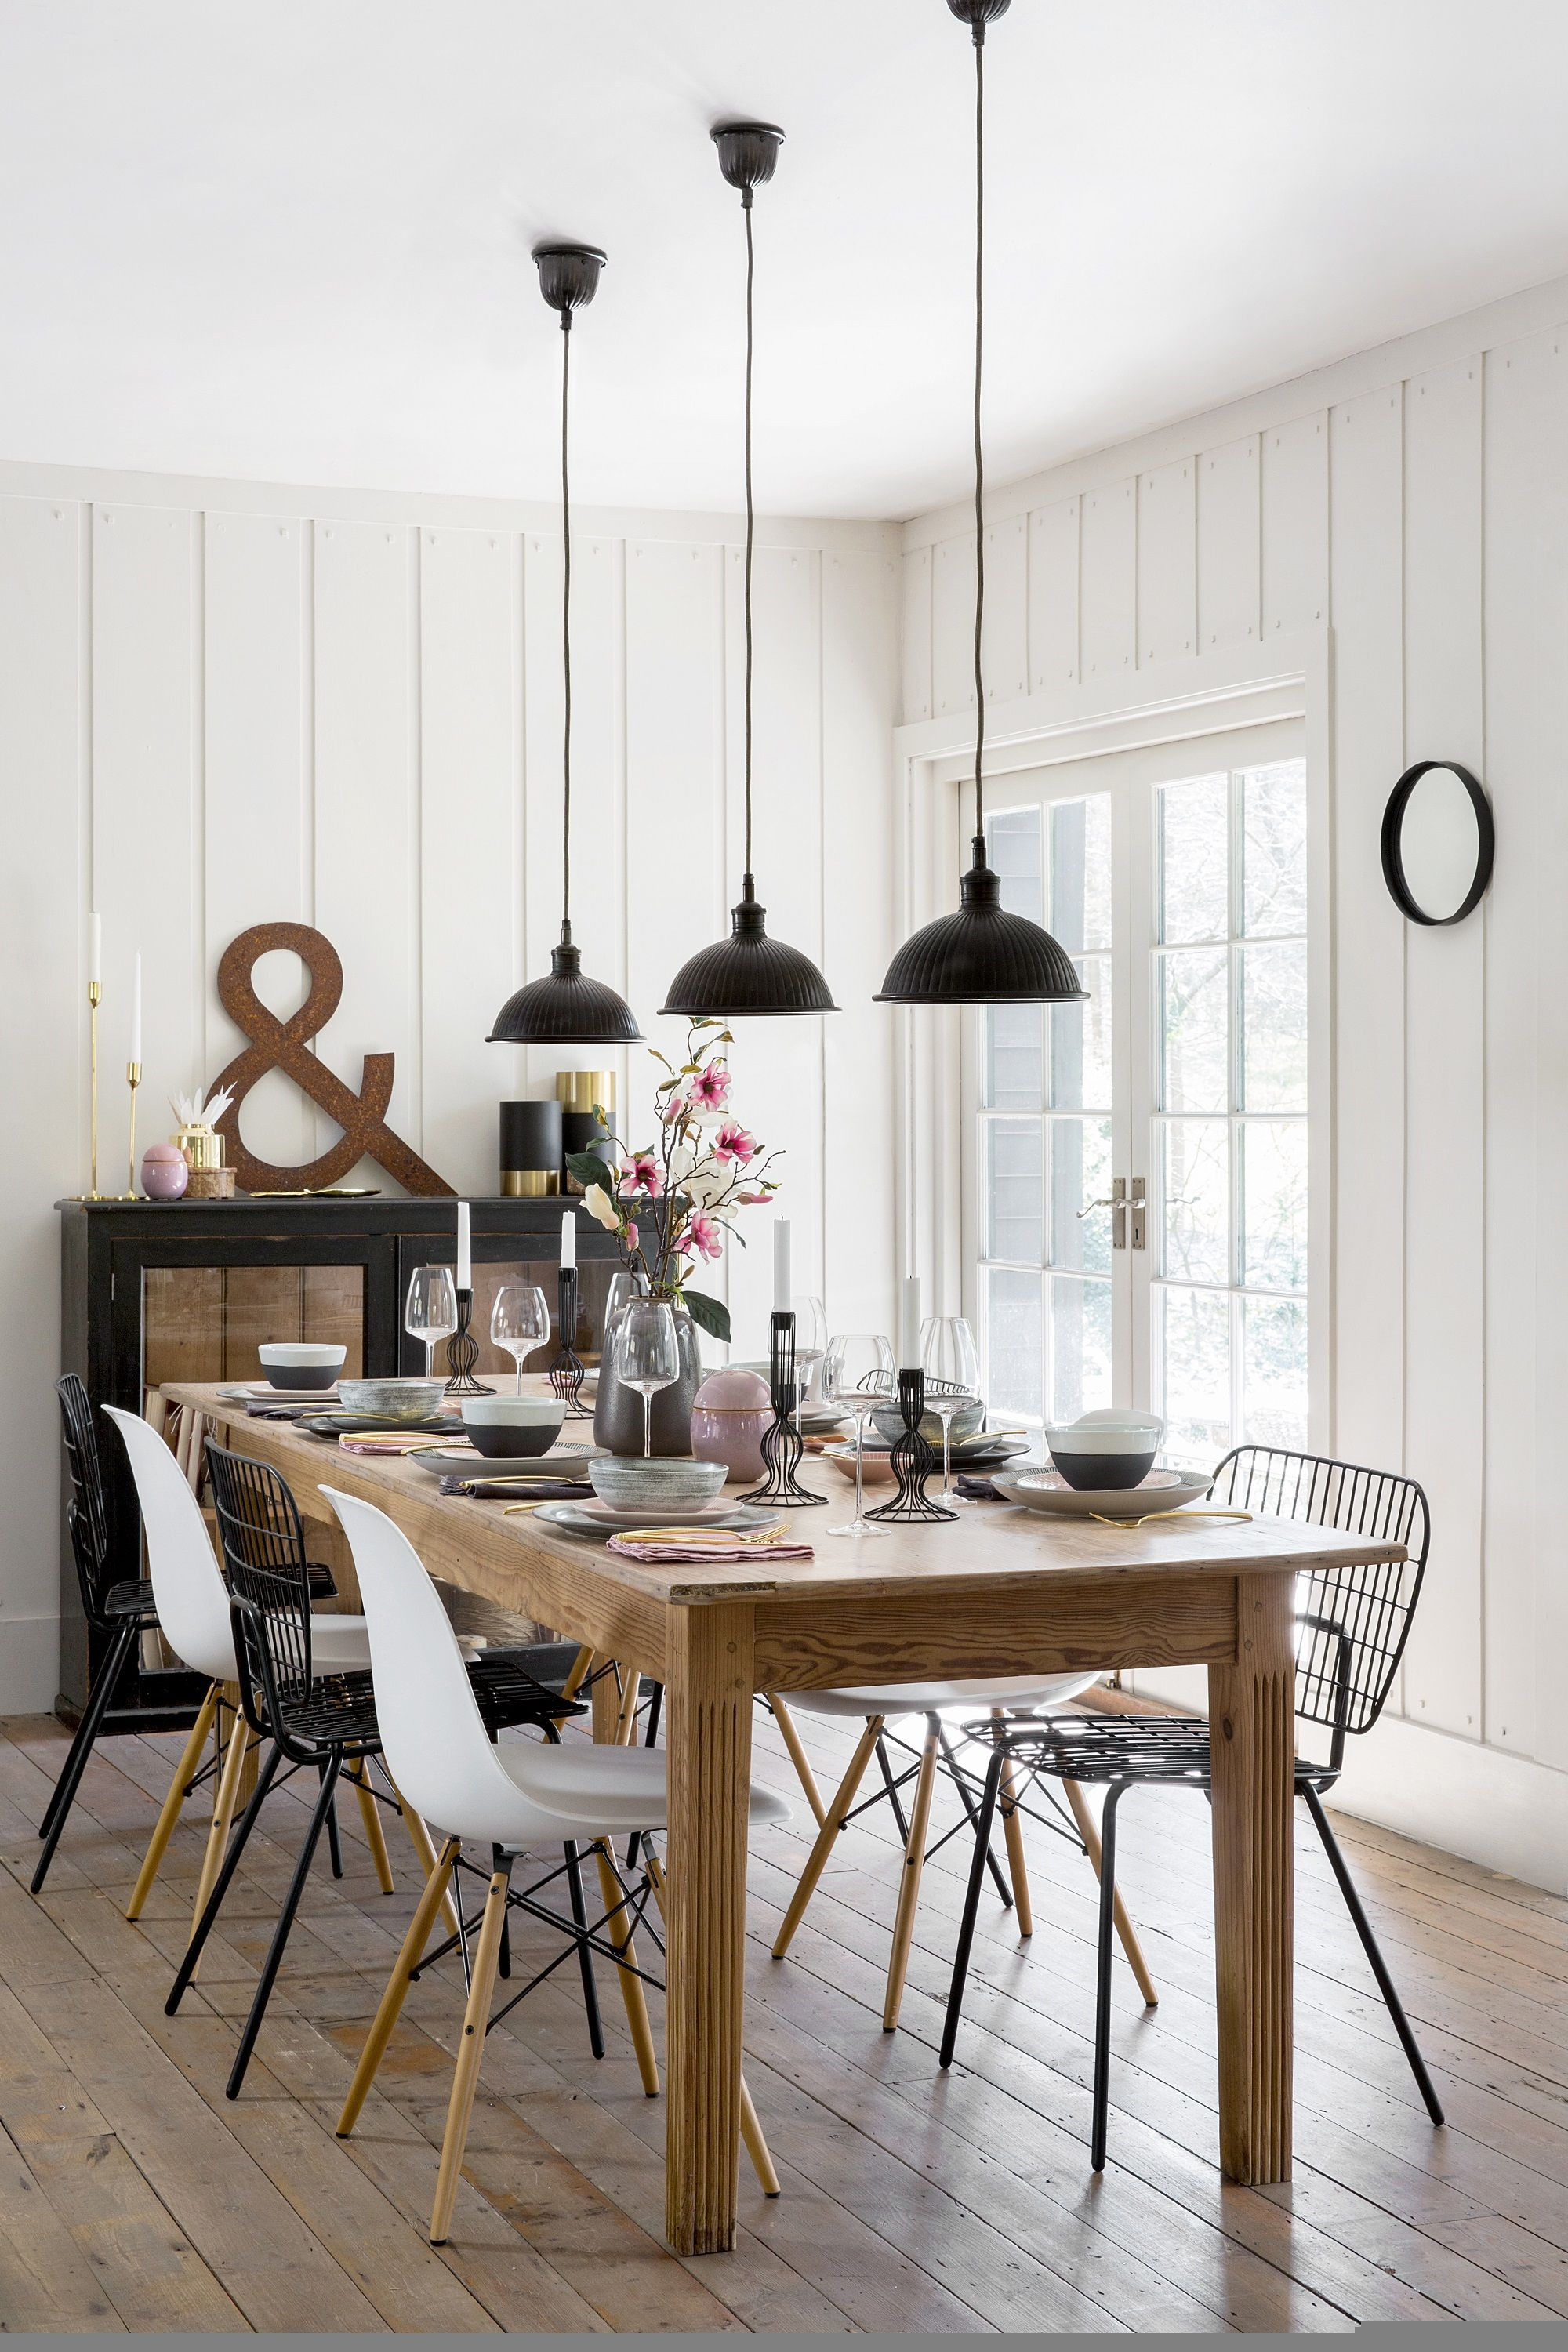 32 Stylish Dining Room Ideas To Impress Your Dinner Guests Decoration Homedecoration De In 2020 Scandi Dining Room Scandinavian Dining Room Stylish Dining Room